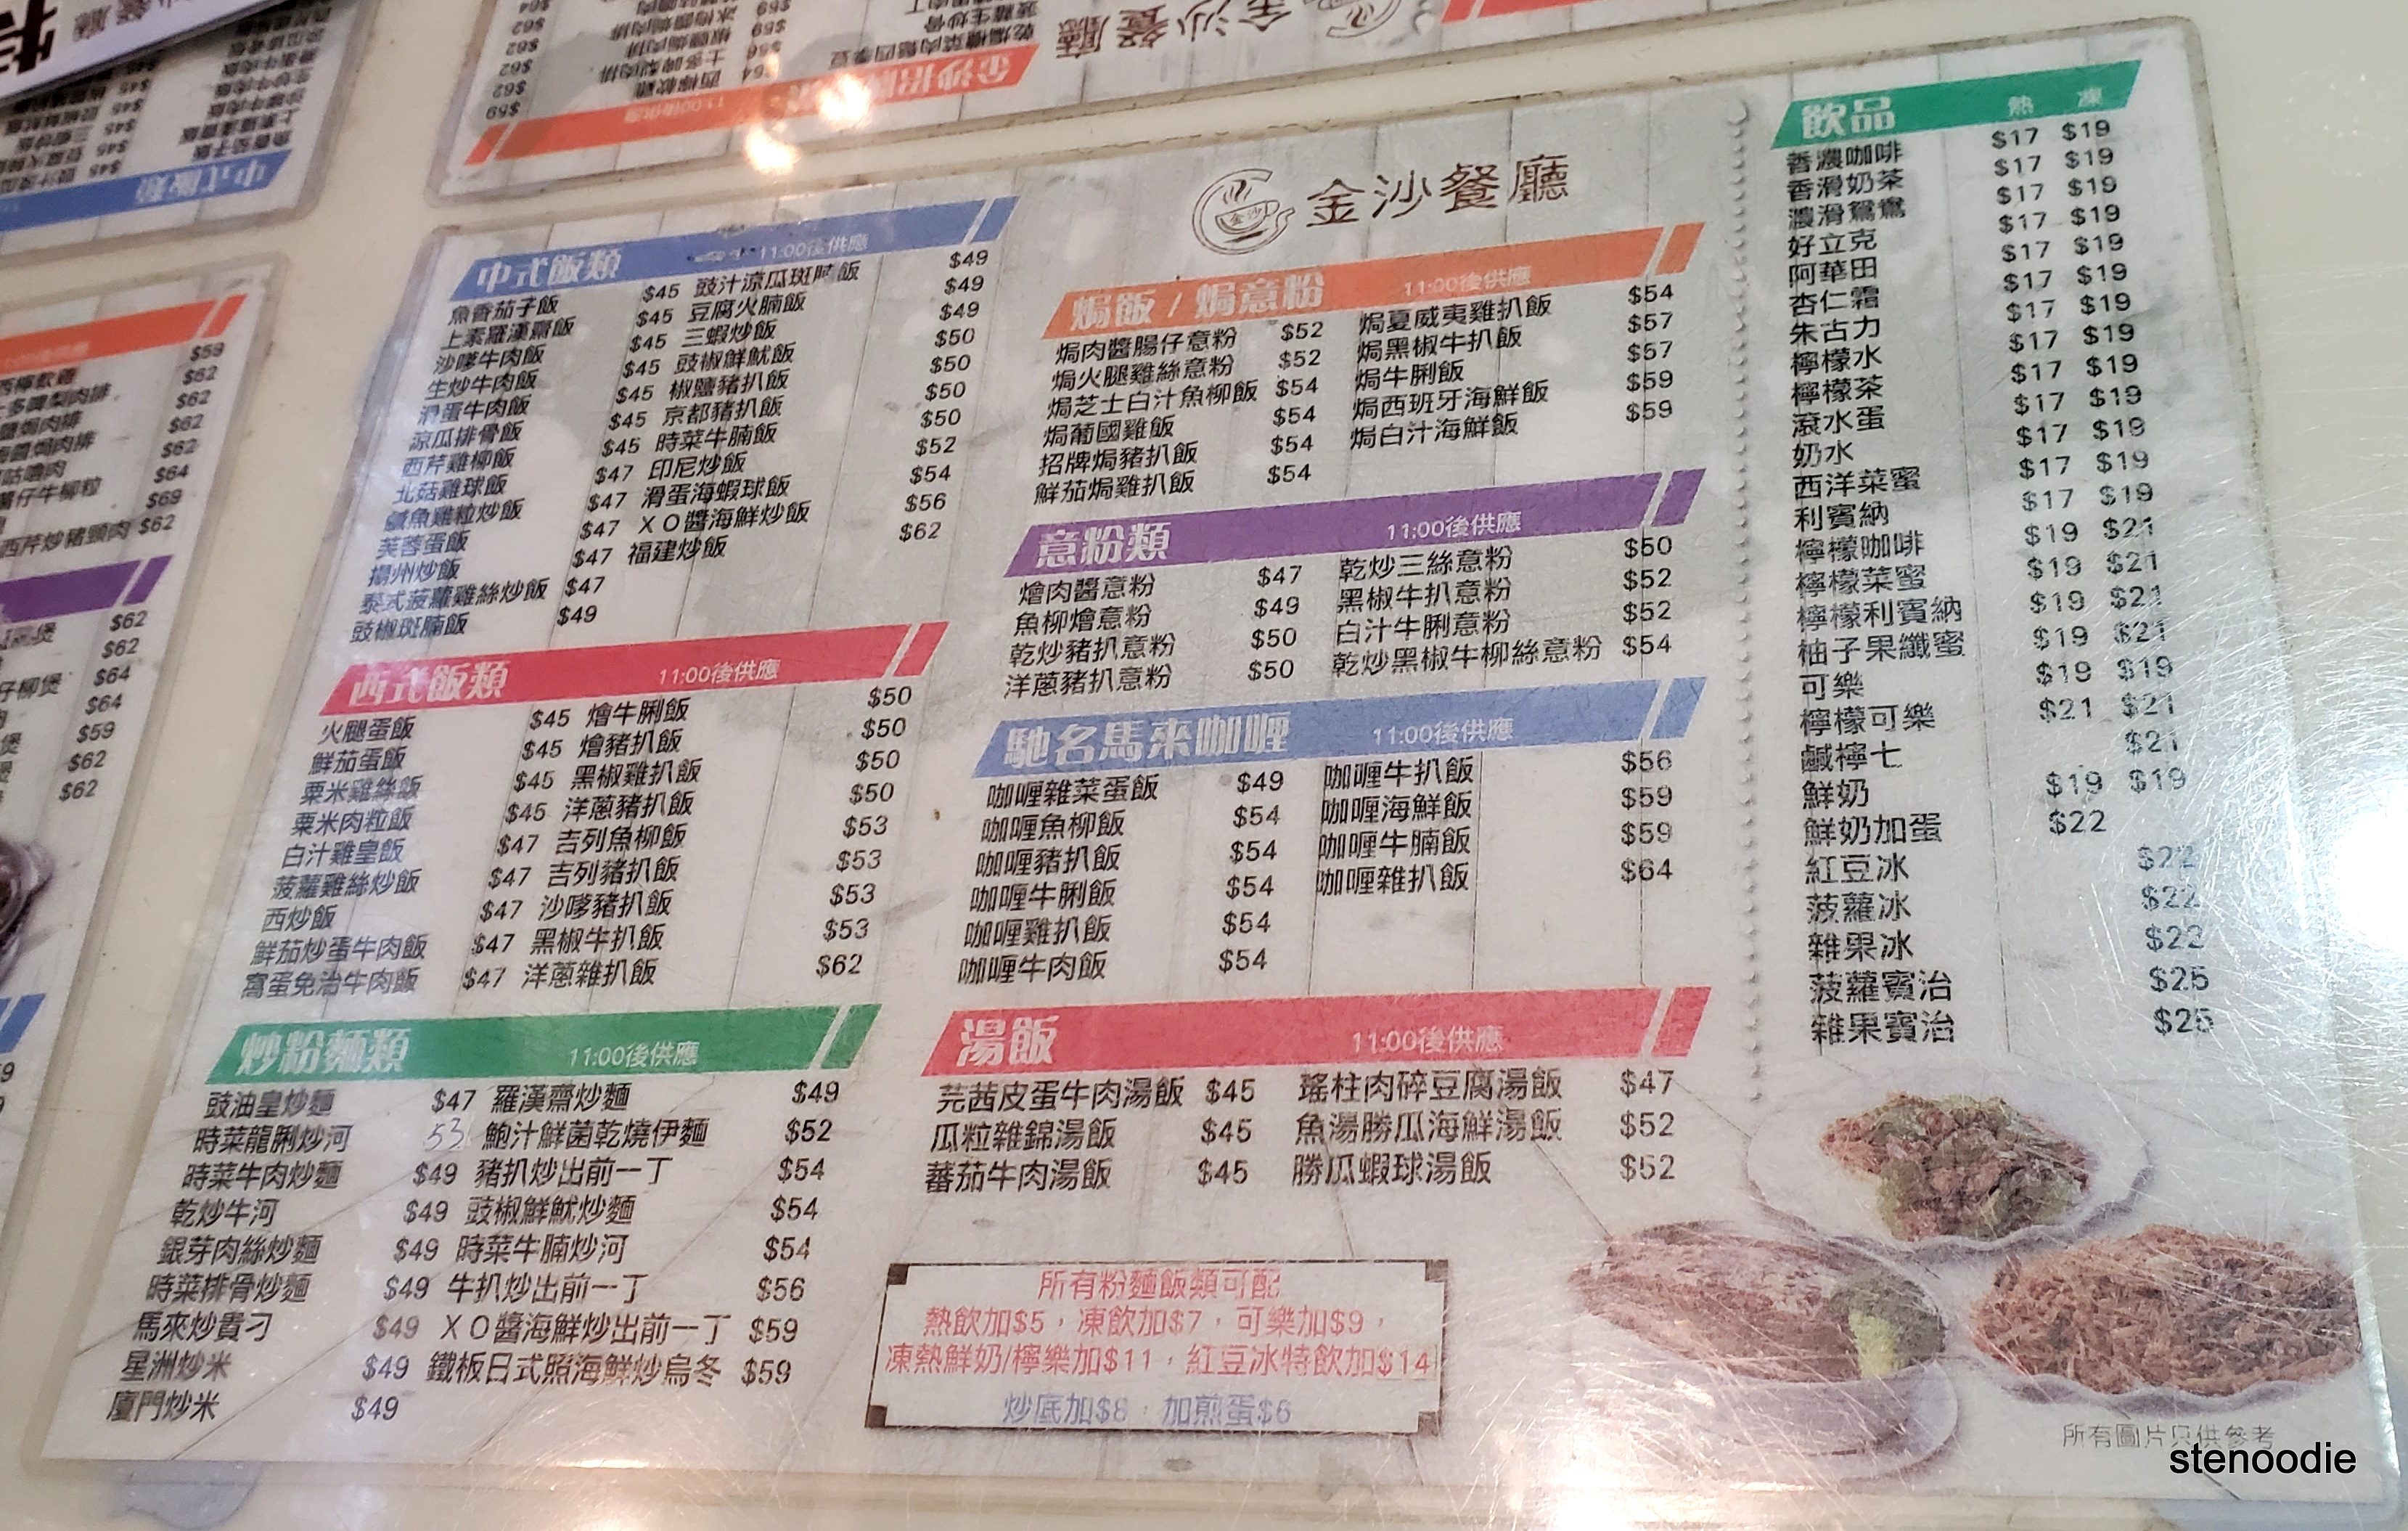 Golden Sand Restaurant menu and prices